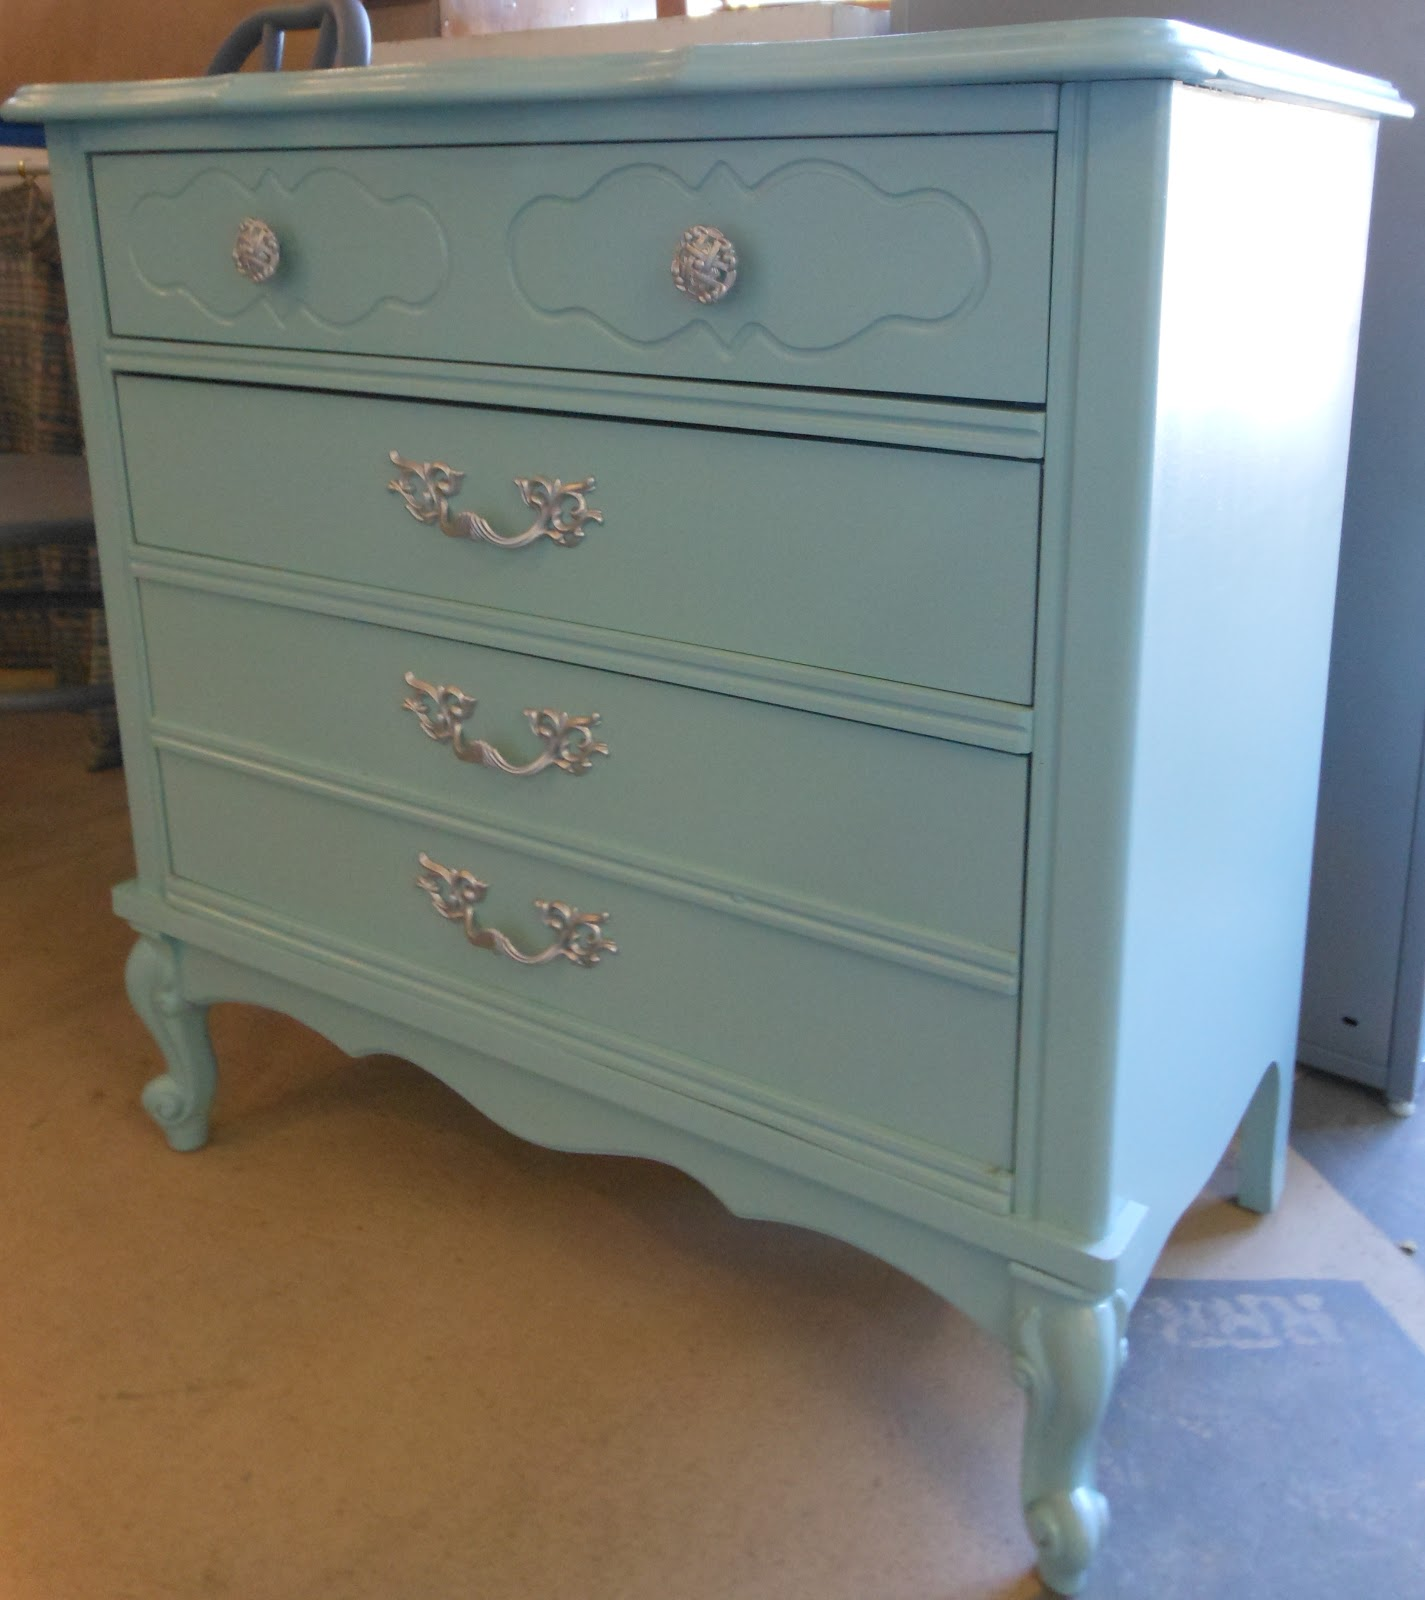 Red Rock Rose: Our GIRLY GLAM Furniture Will Make Great